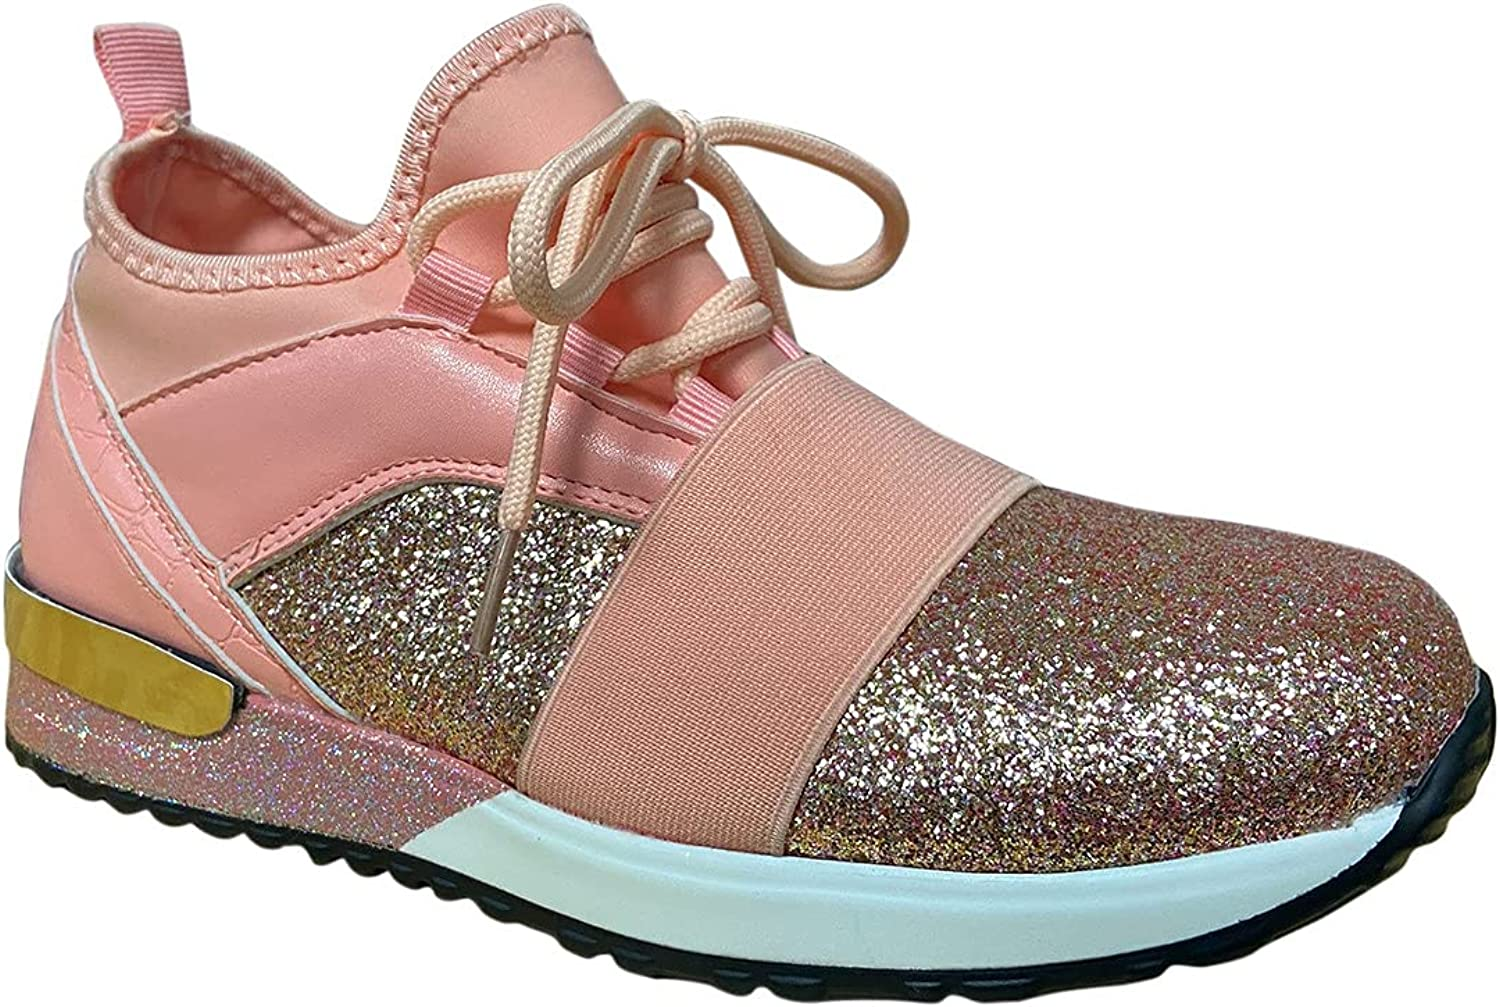 NEW before selling Max 87% OFF 112 Women's Fashion Sneakers Women Loafers Mid Heel Comfortable